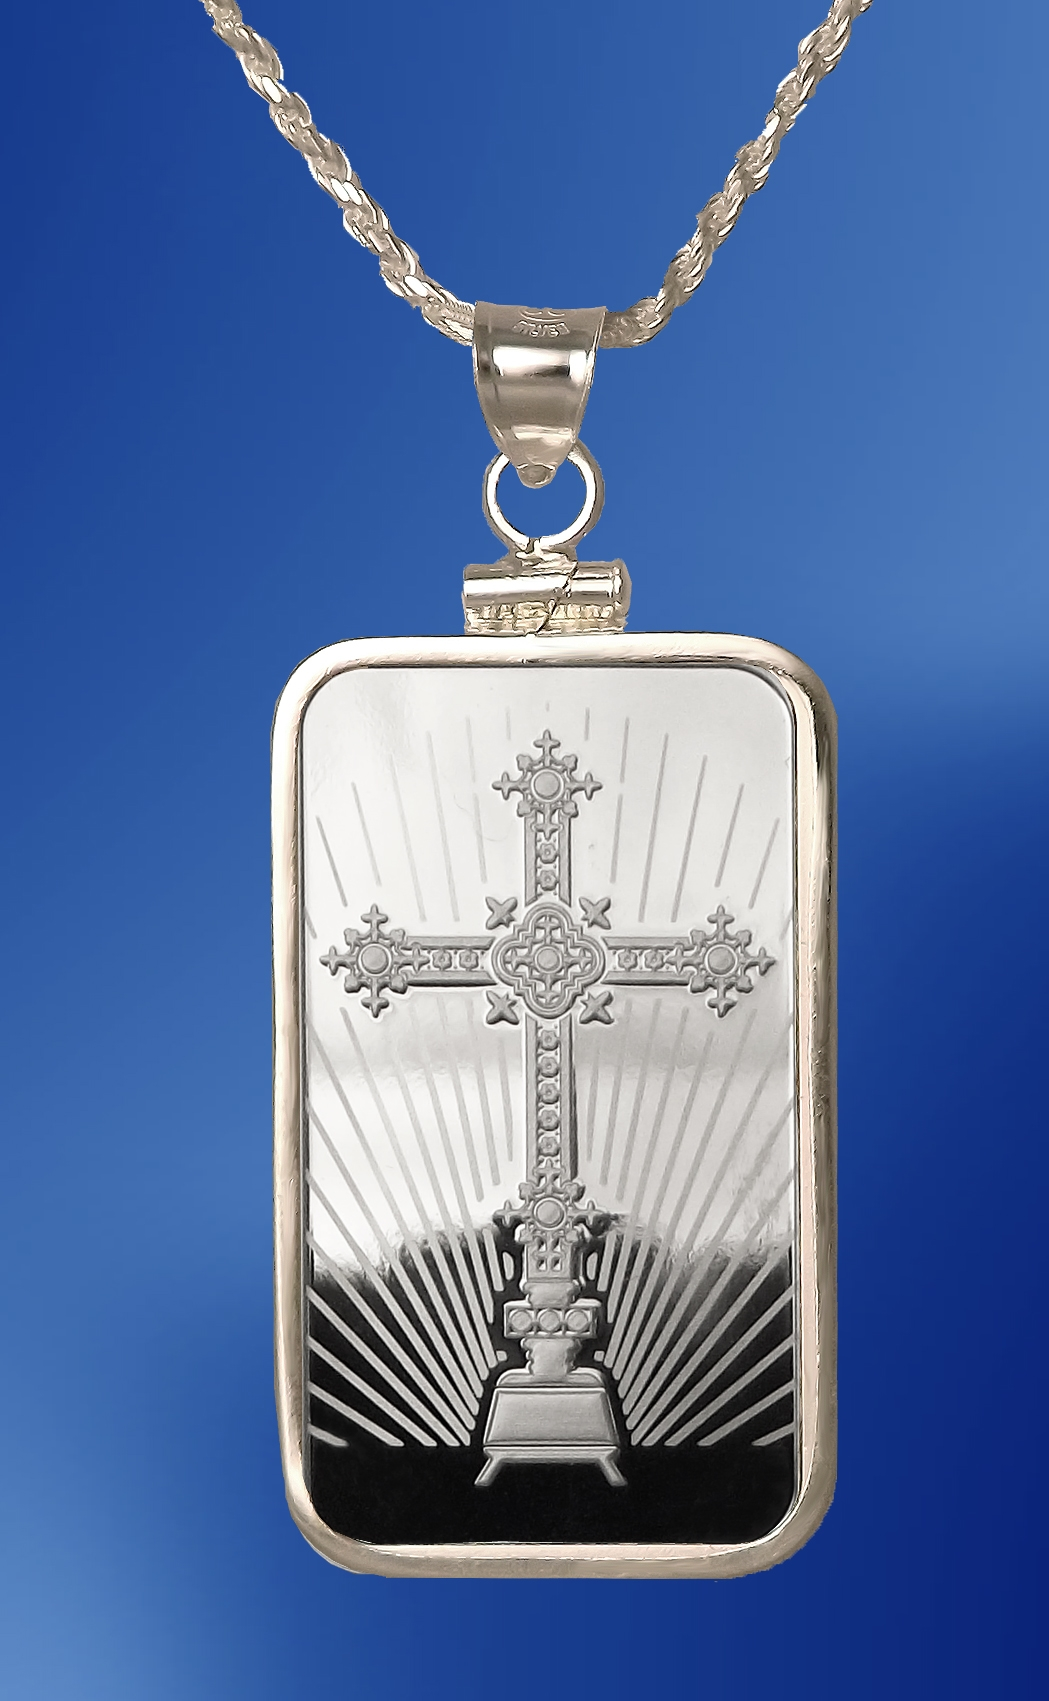 PAMP Cross 10g Fine Proof Silver Bar Necklace NPCM5-CR10-20DC5